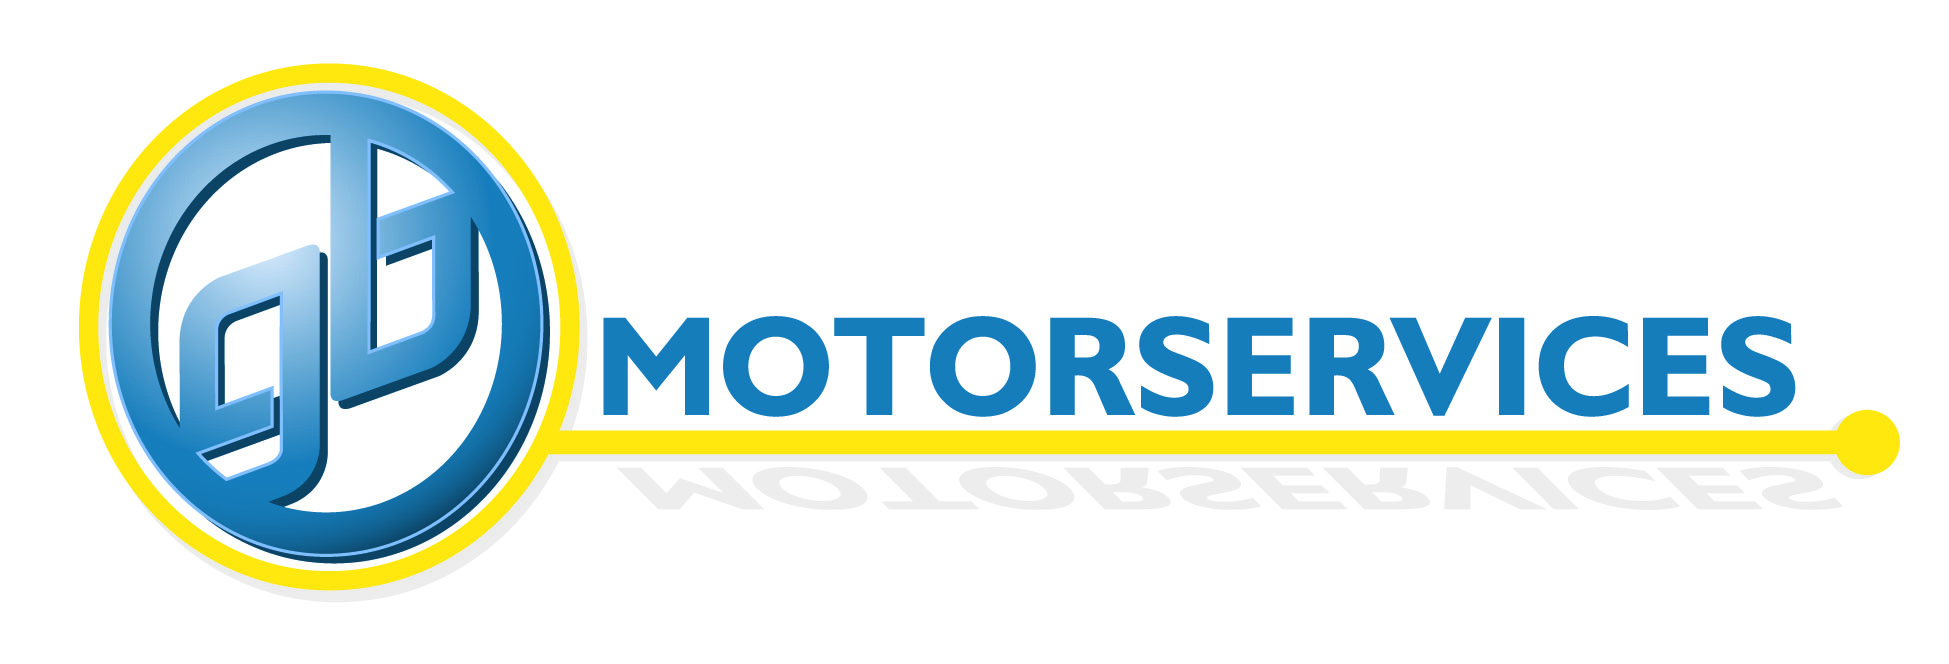 GB MotorServices Website